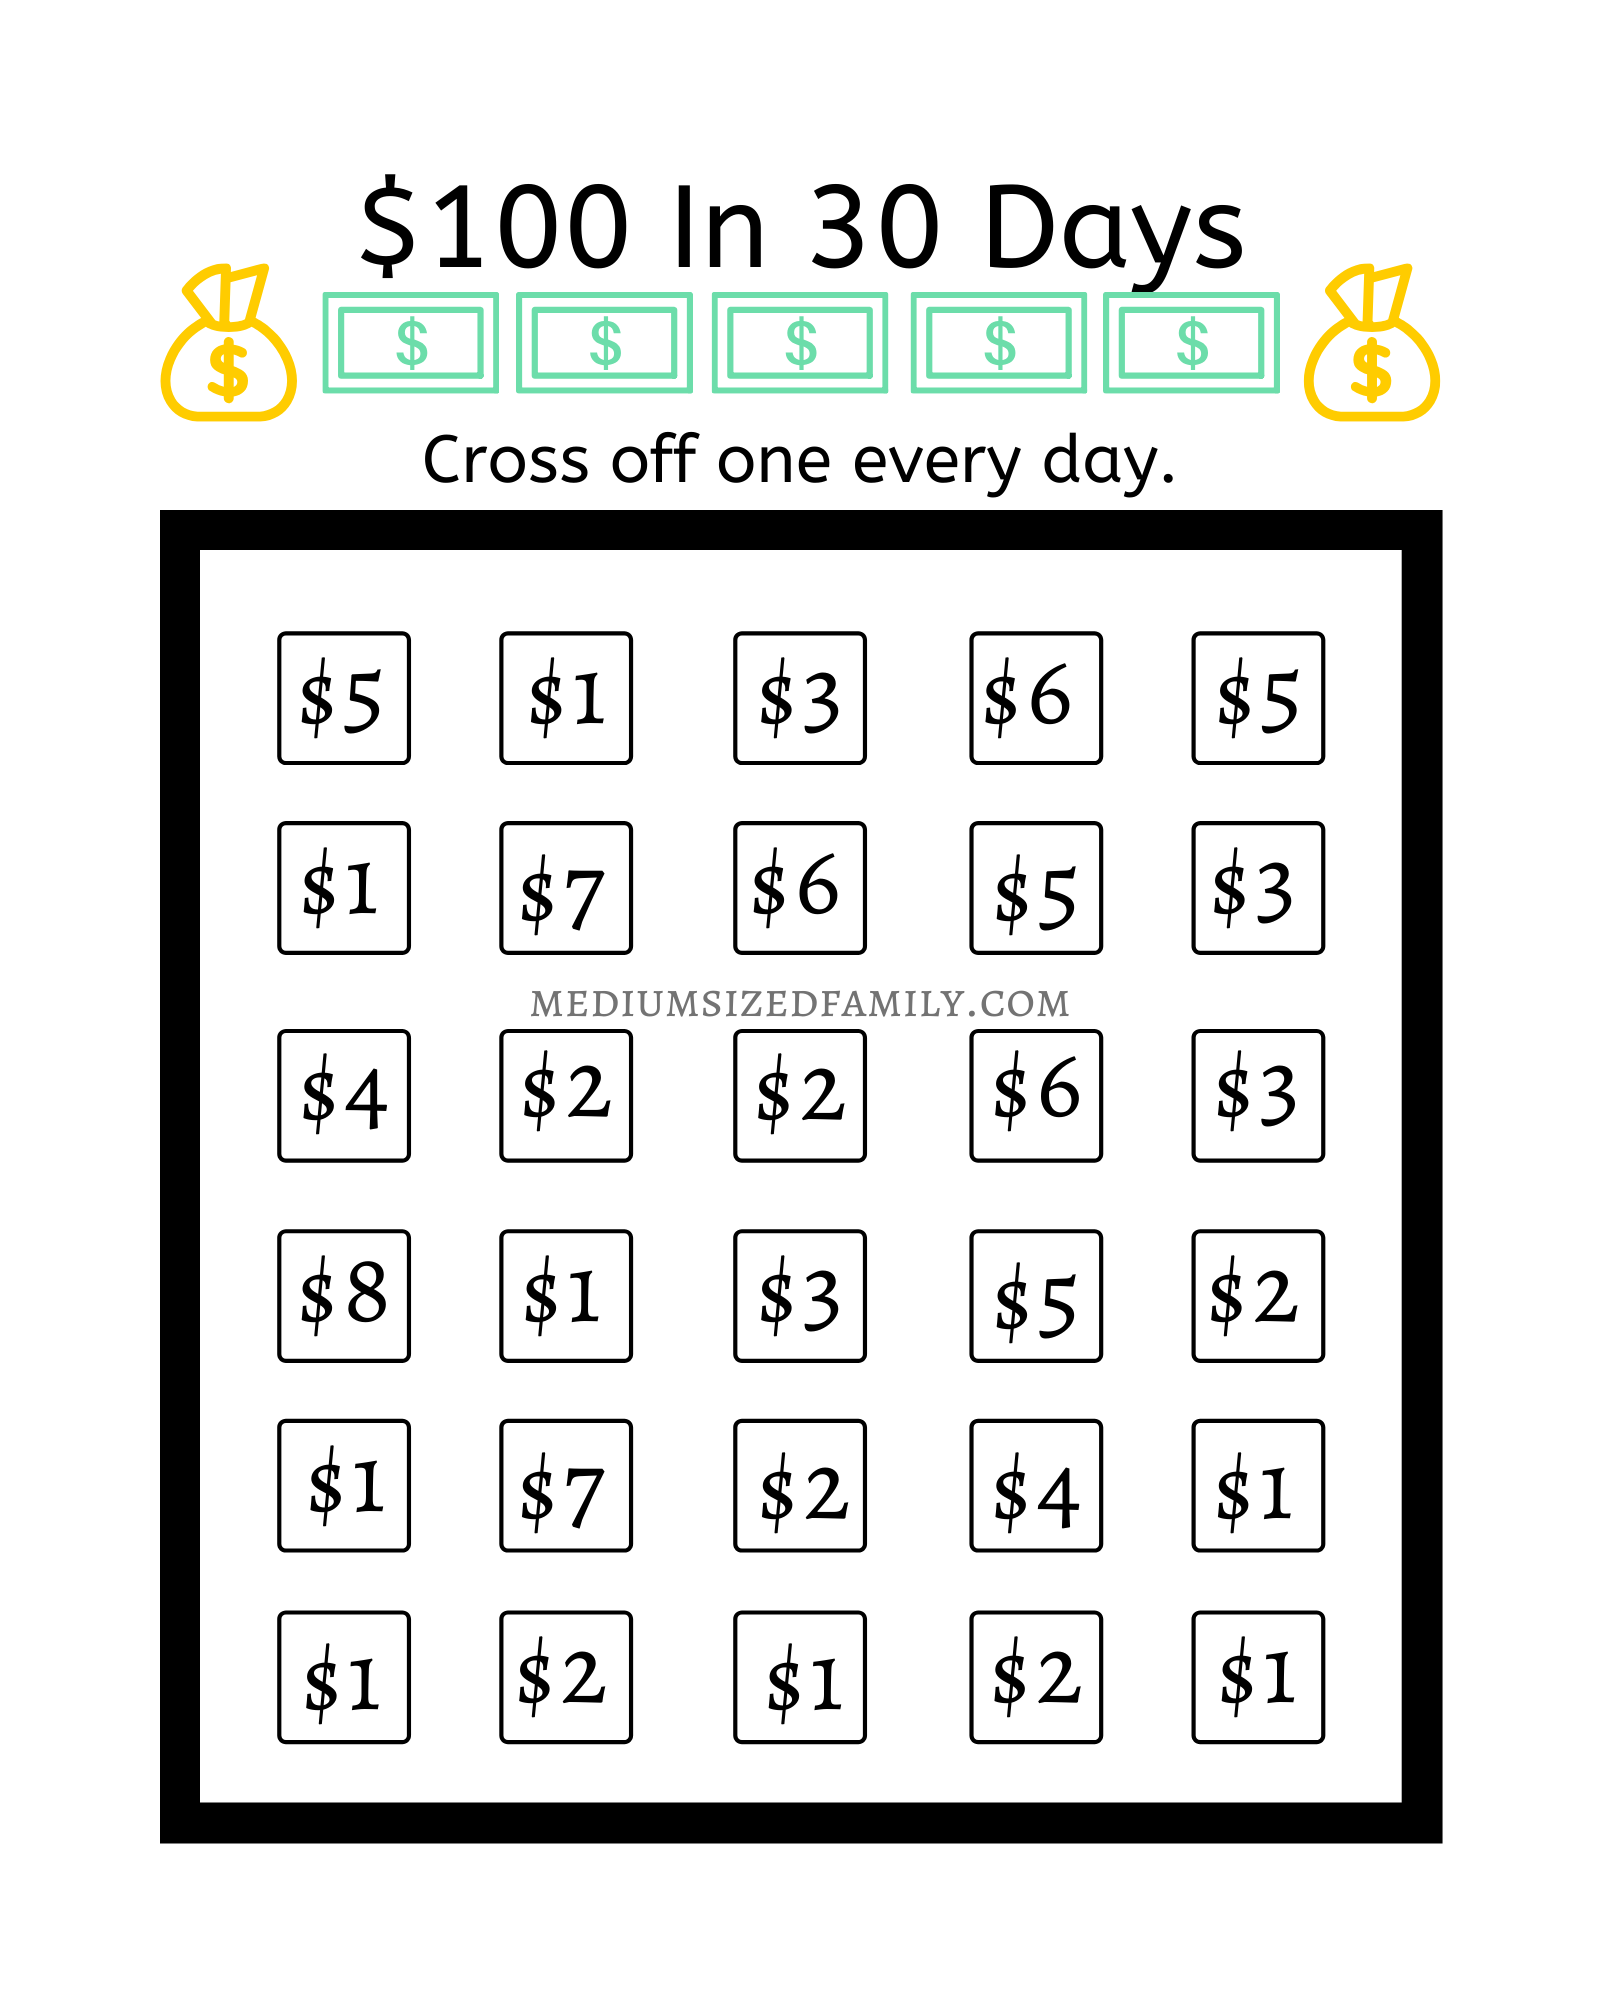 This Easy Money Chart Will Show You How to Save $100 A Month - Medium Sized  Family